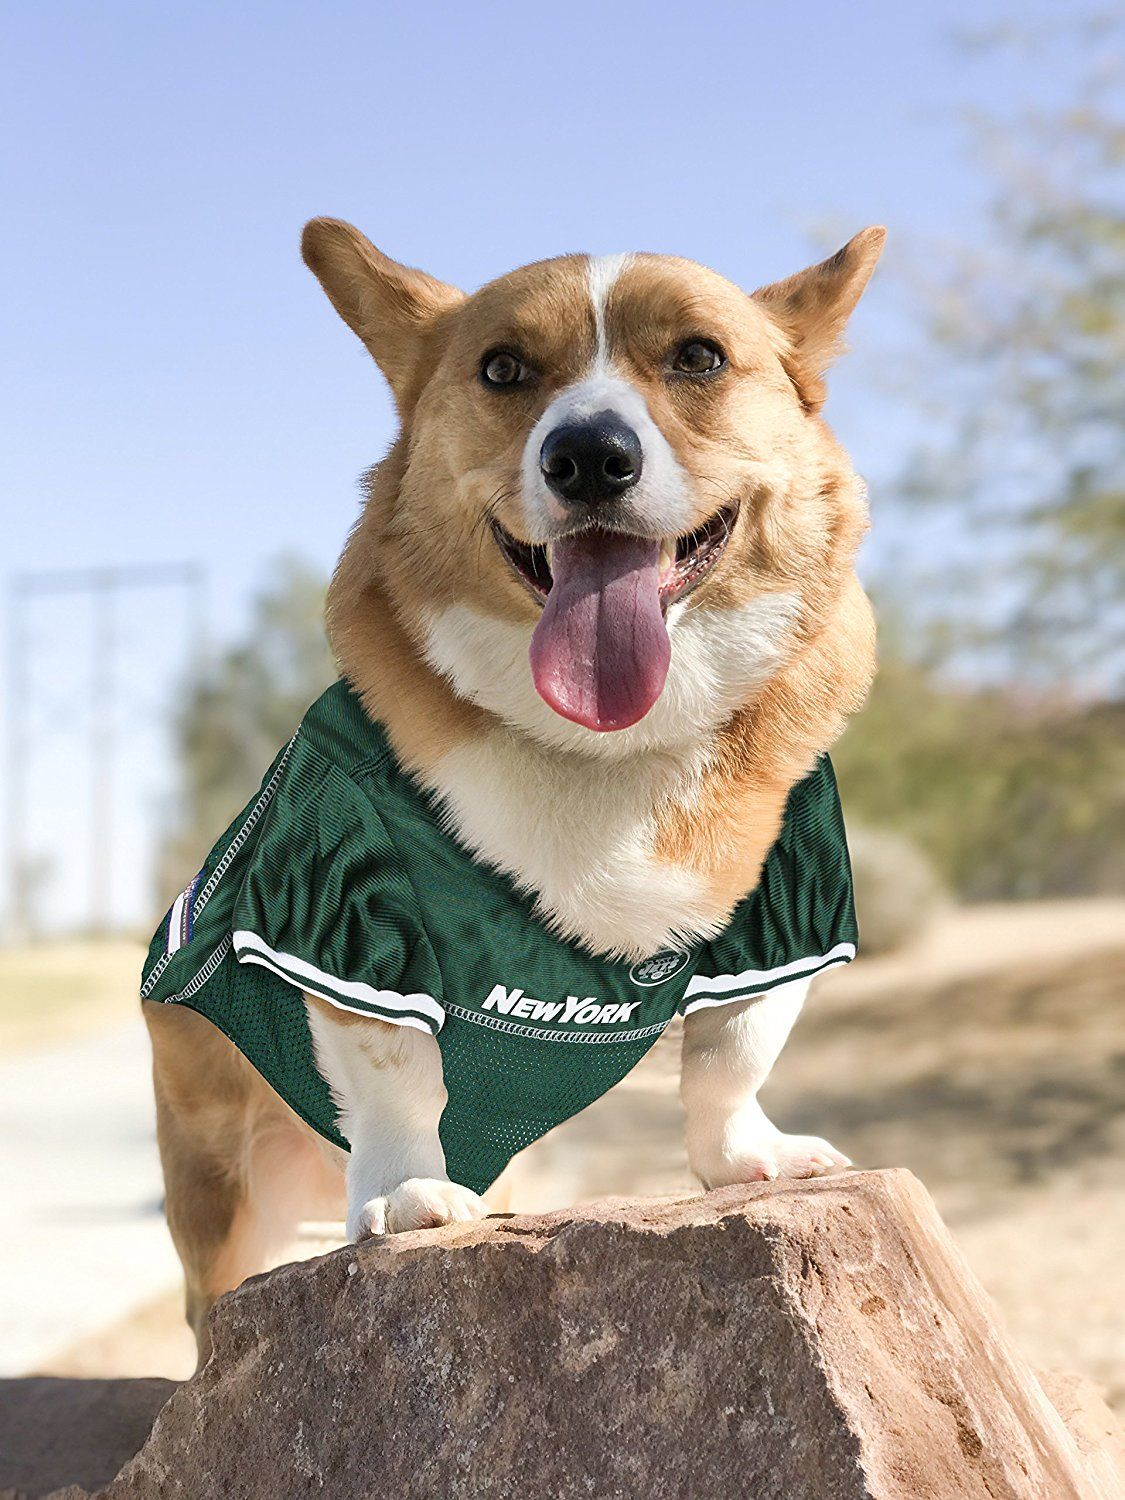 6edb9daf4e3 Official NFL New York Jets Football Jersey for your Dog. They come in all  sizes! So cute! www.dogfootballjersey.com